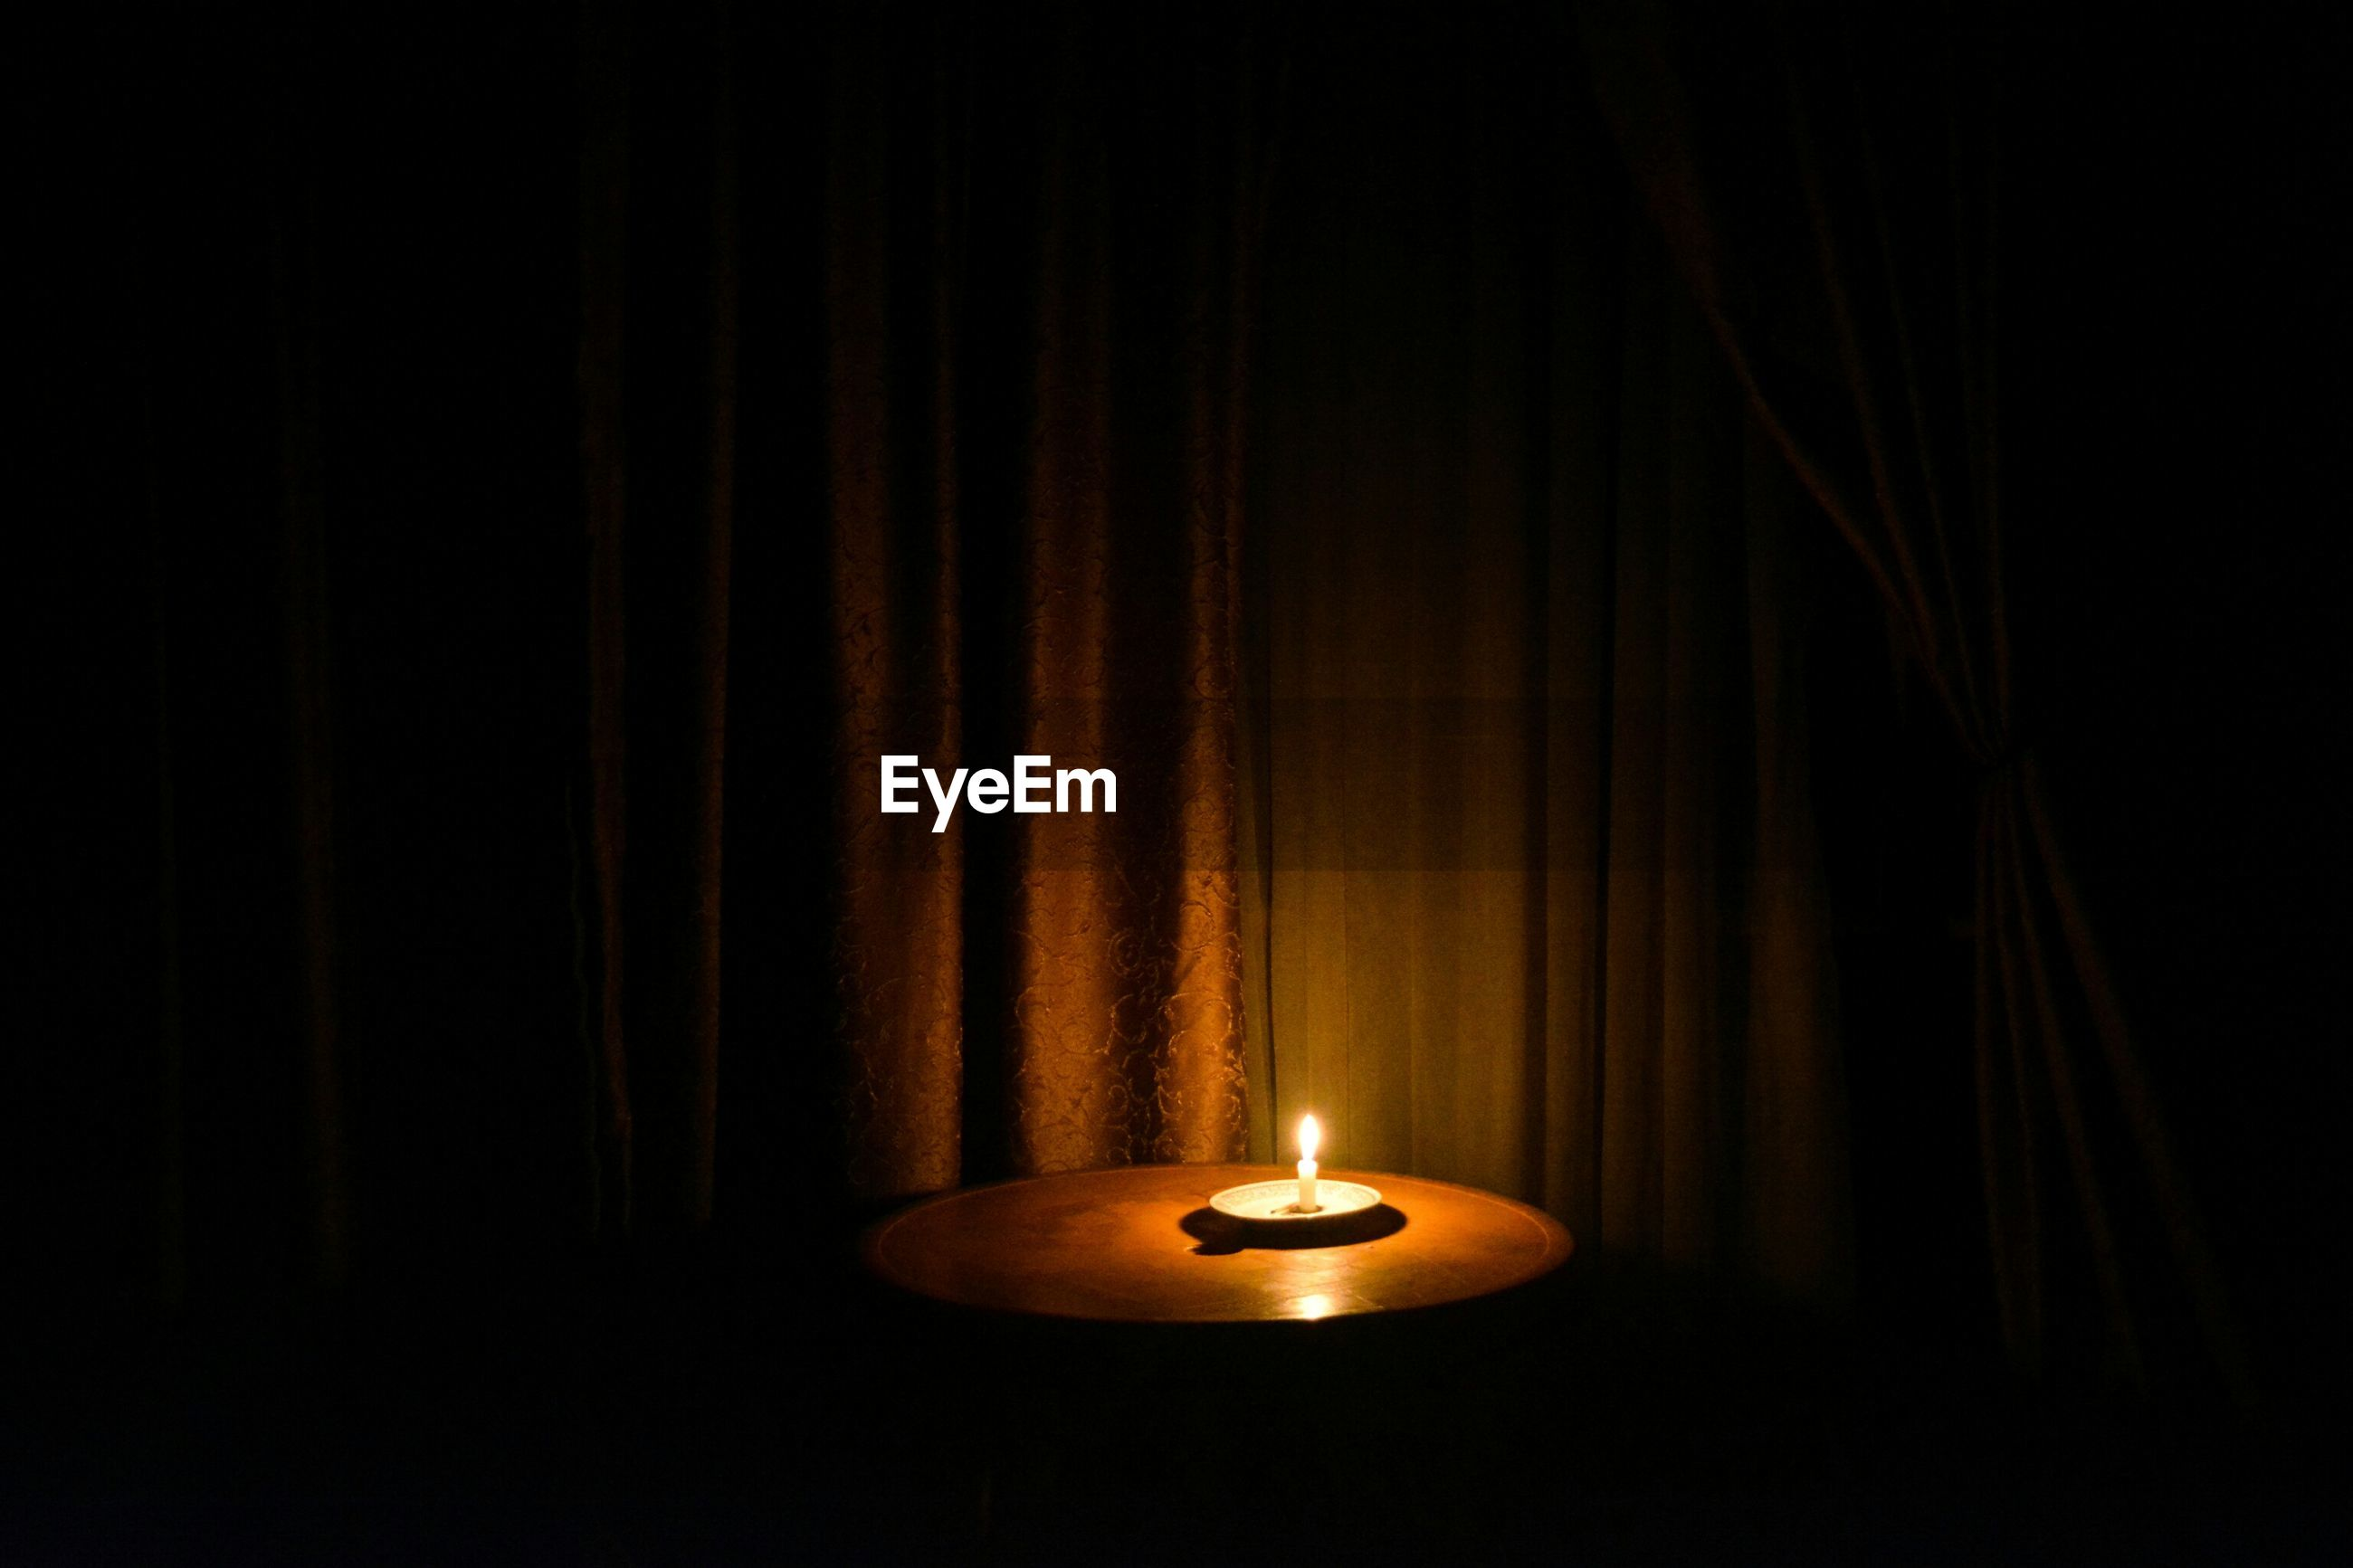 curtain, no people, candle, flame, indoors, illuminated, close-up, night